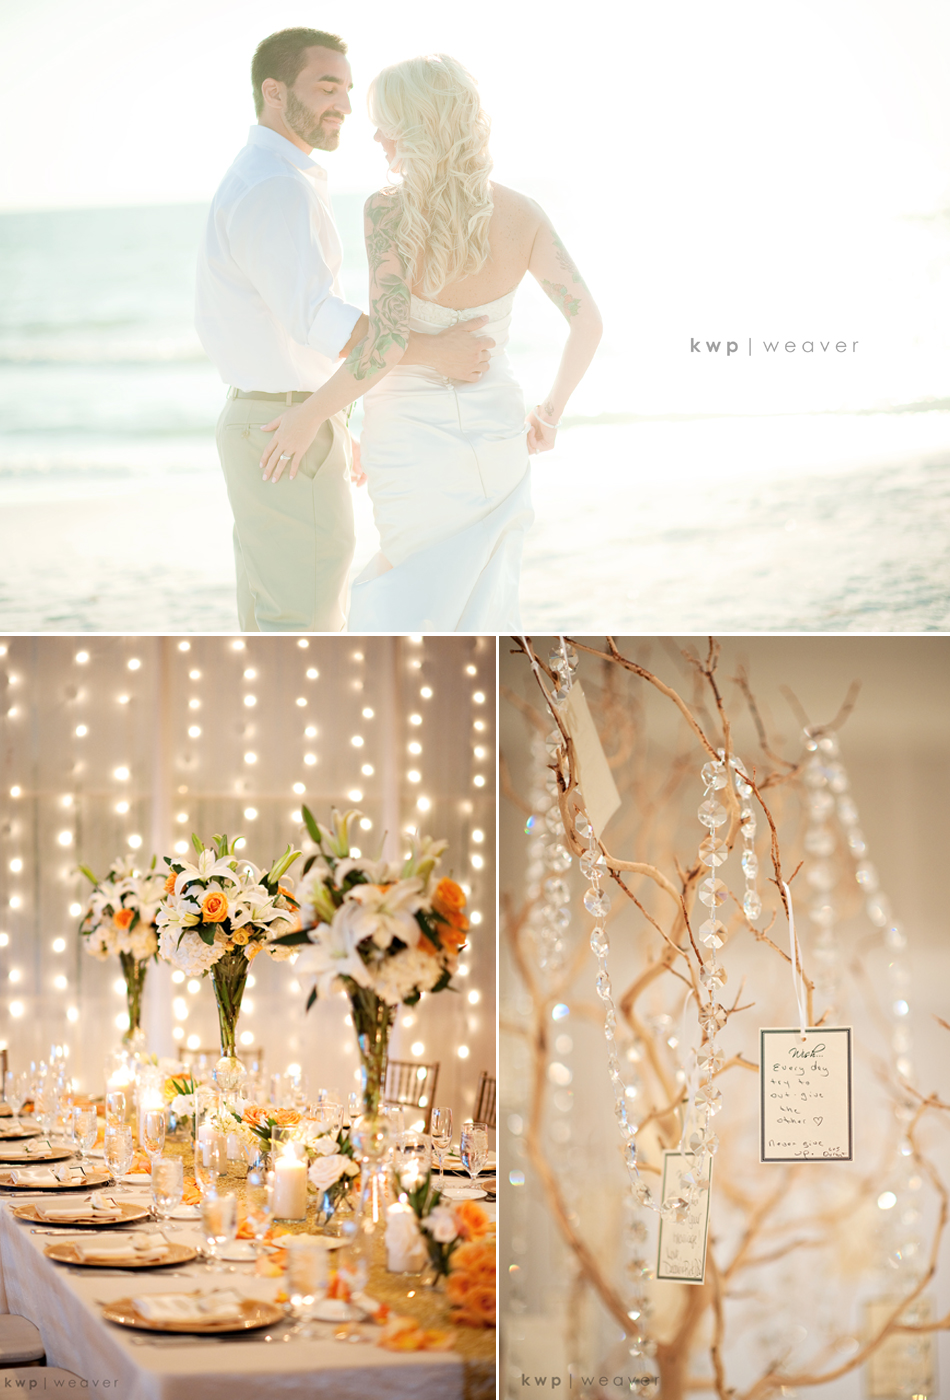 Fall wedding decoration ideas reception  Elegantbeachweddingdecorweddingreceptiontablescapesfloral